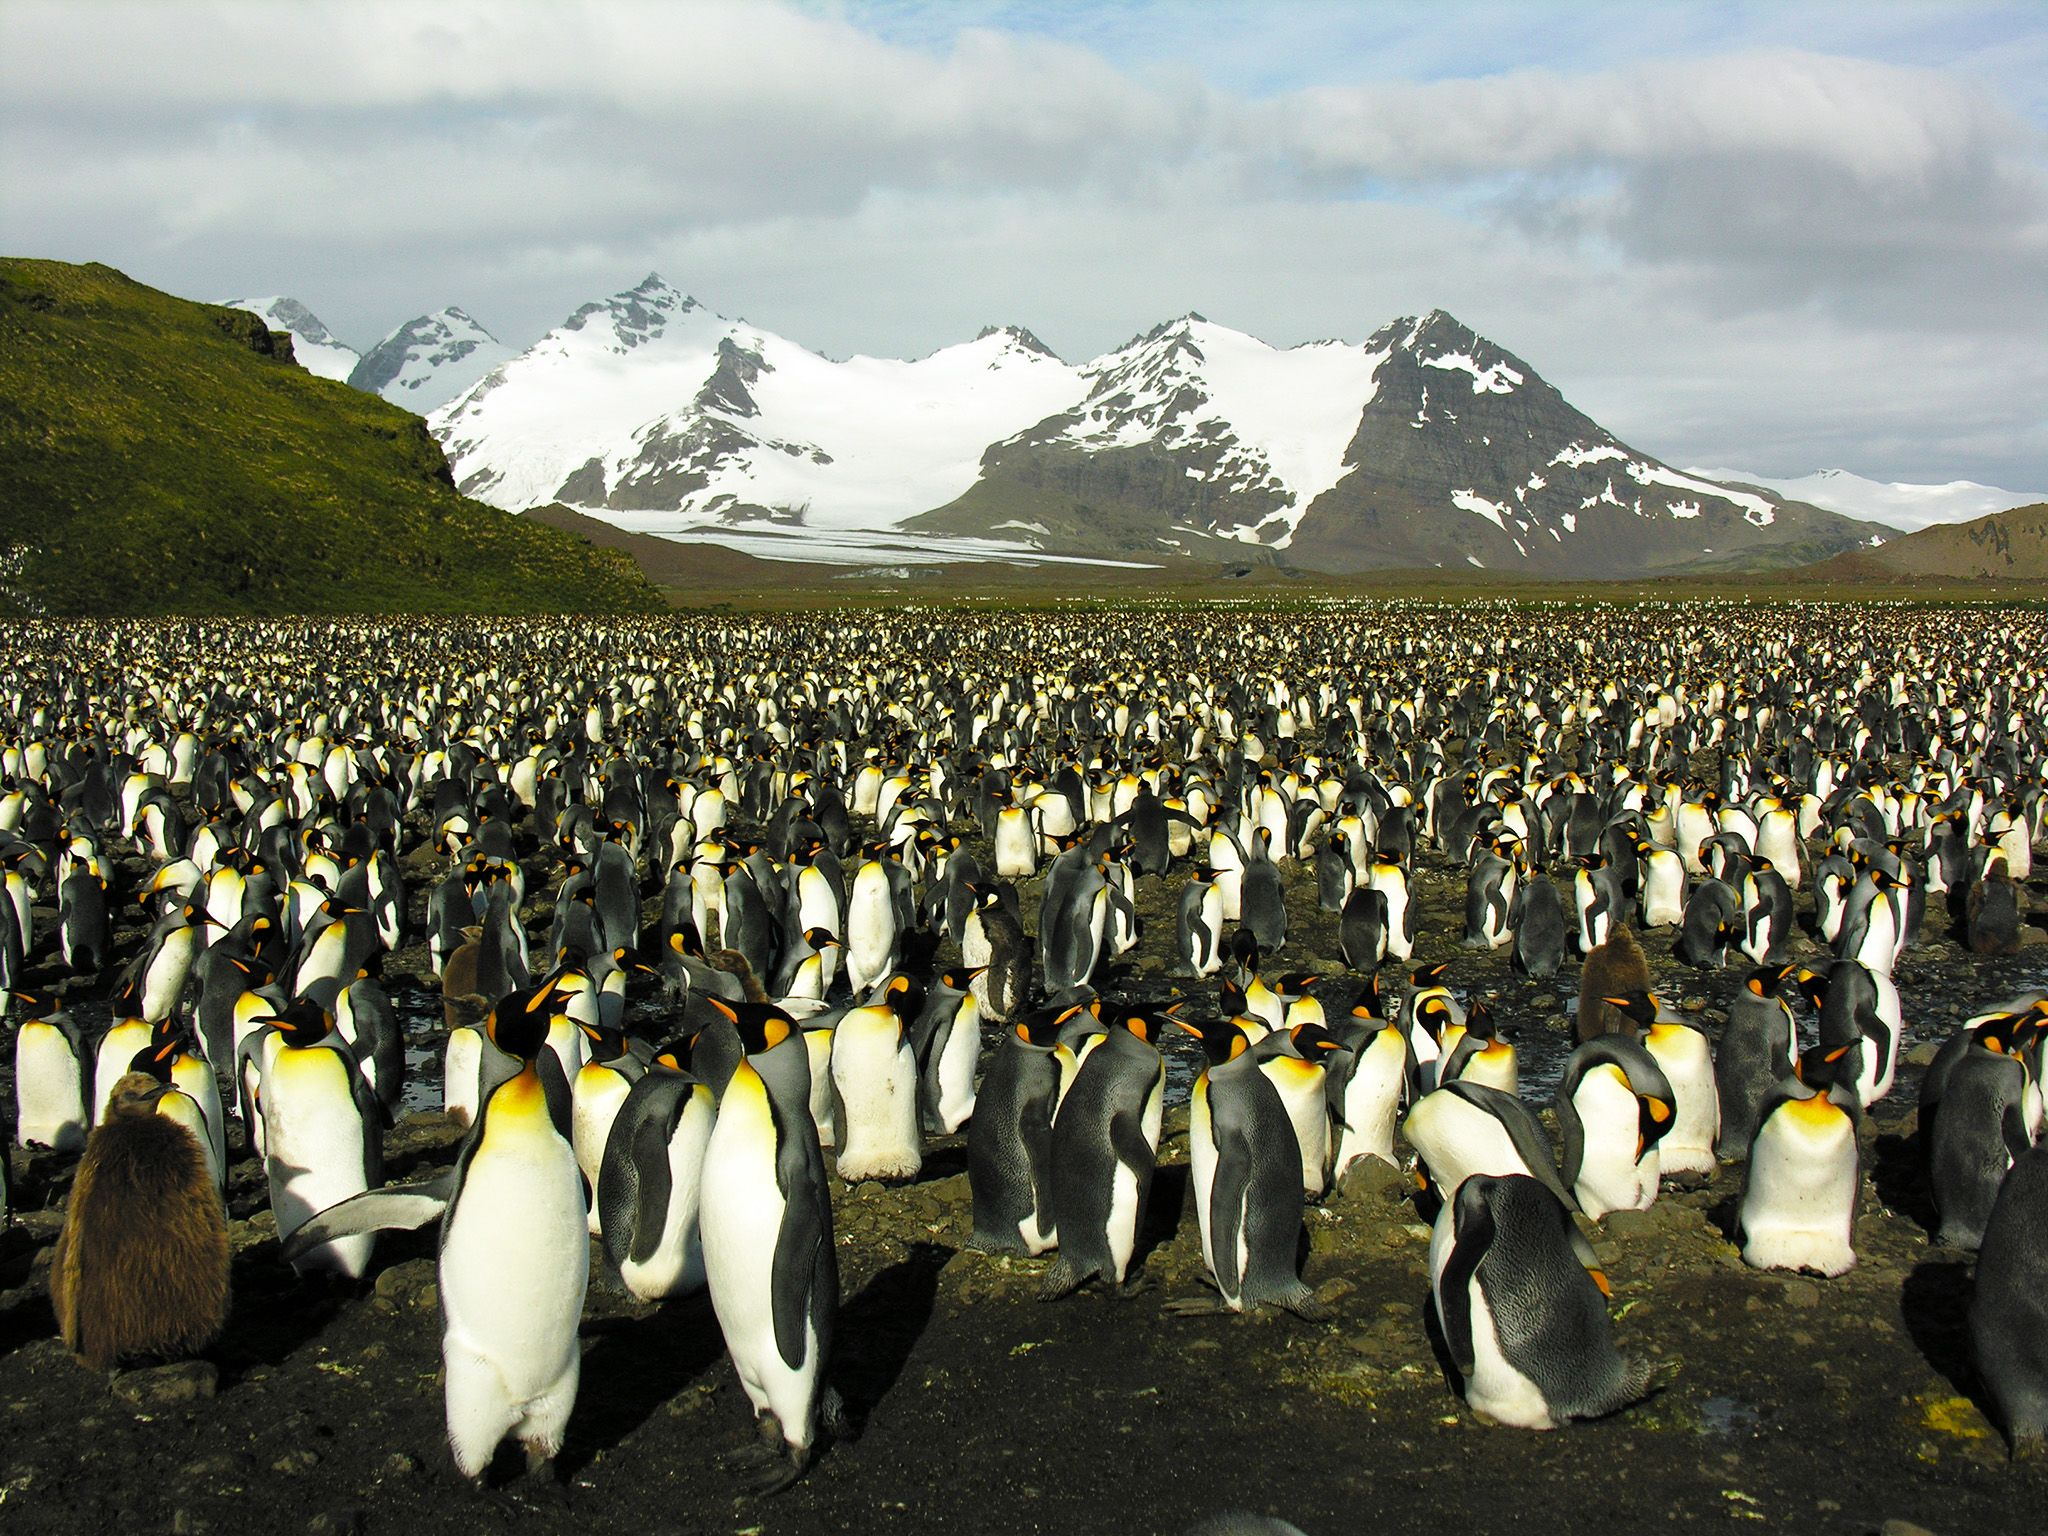 South Georgia: A great number of King Penguins in South Georgia, with snow-capped mountains and h... [Photo of the day - October 2015]